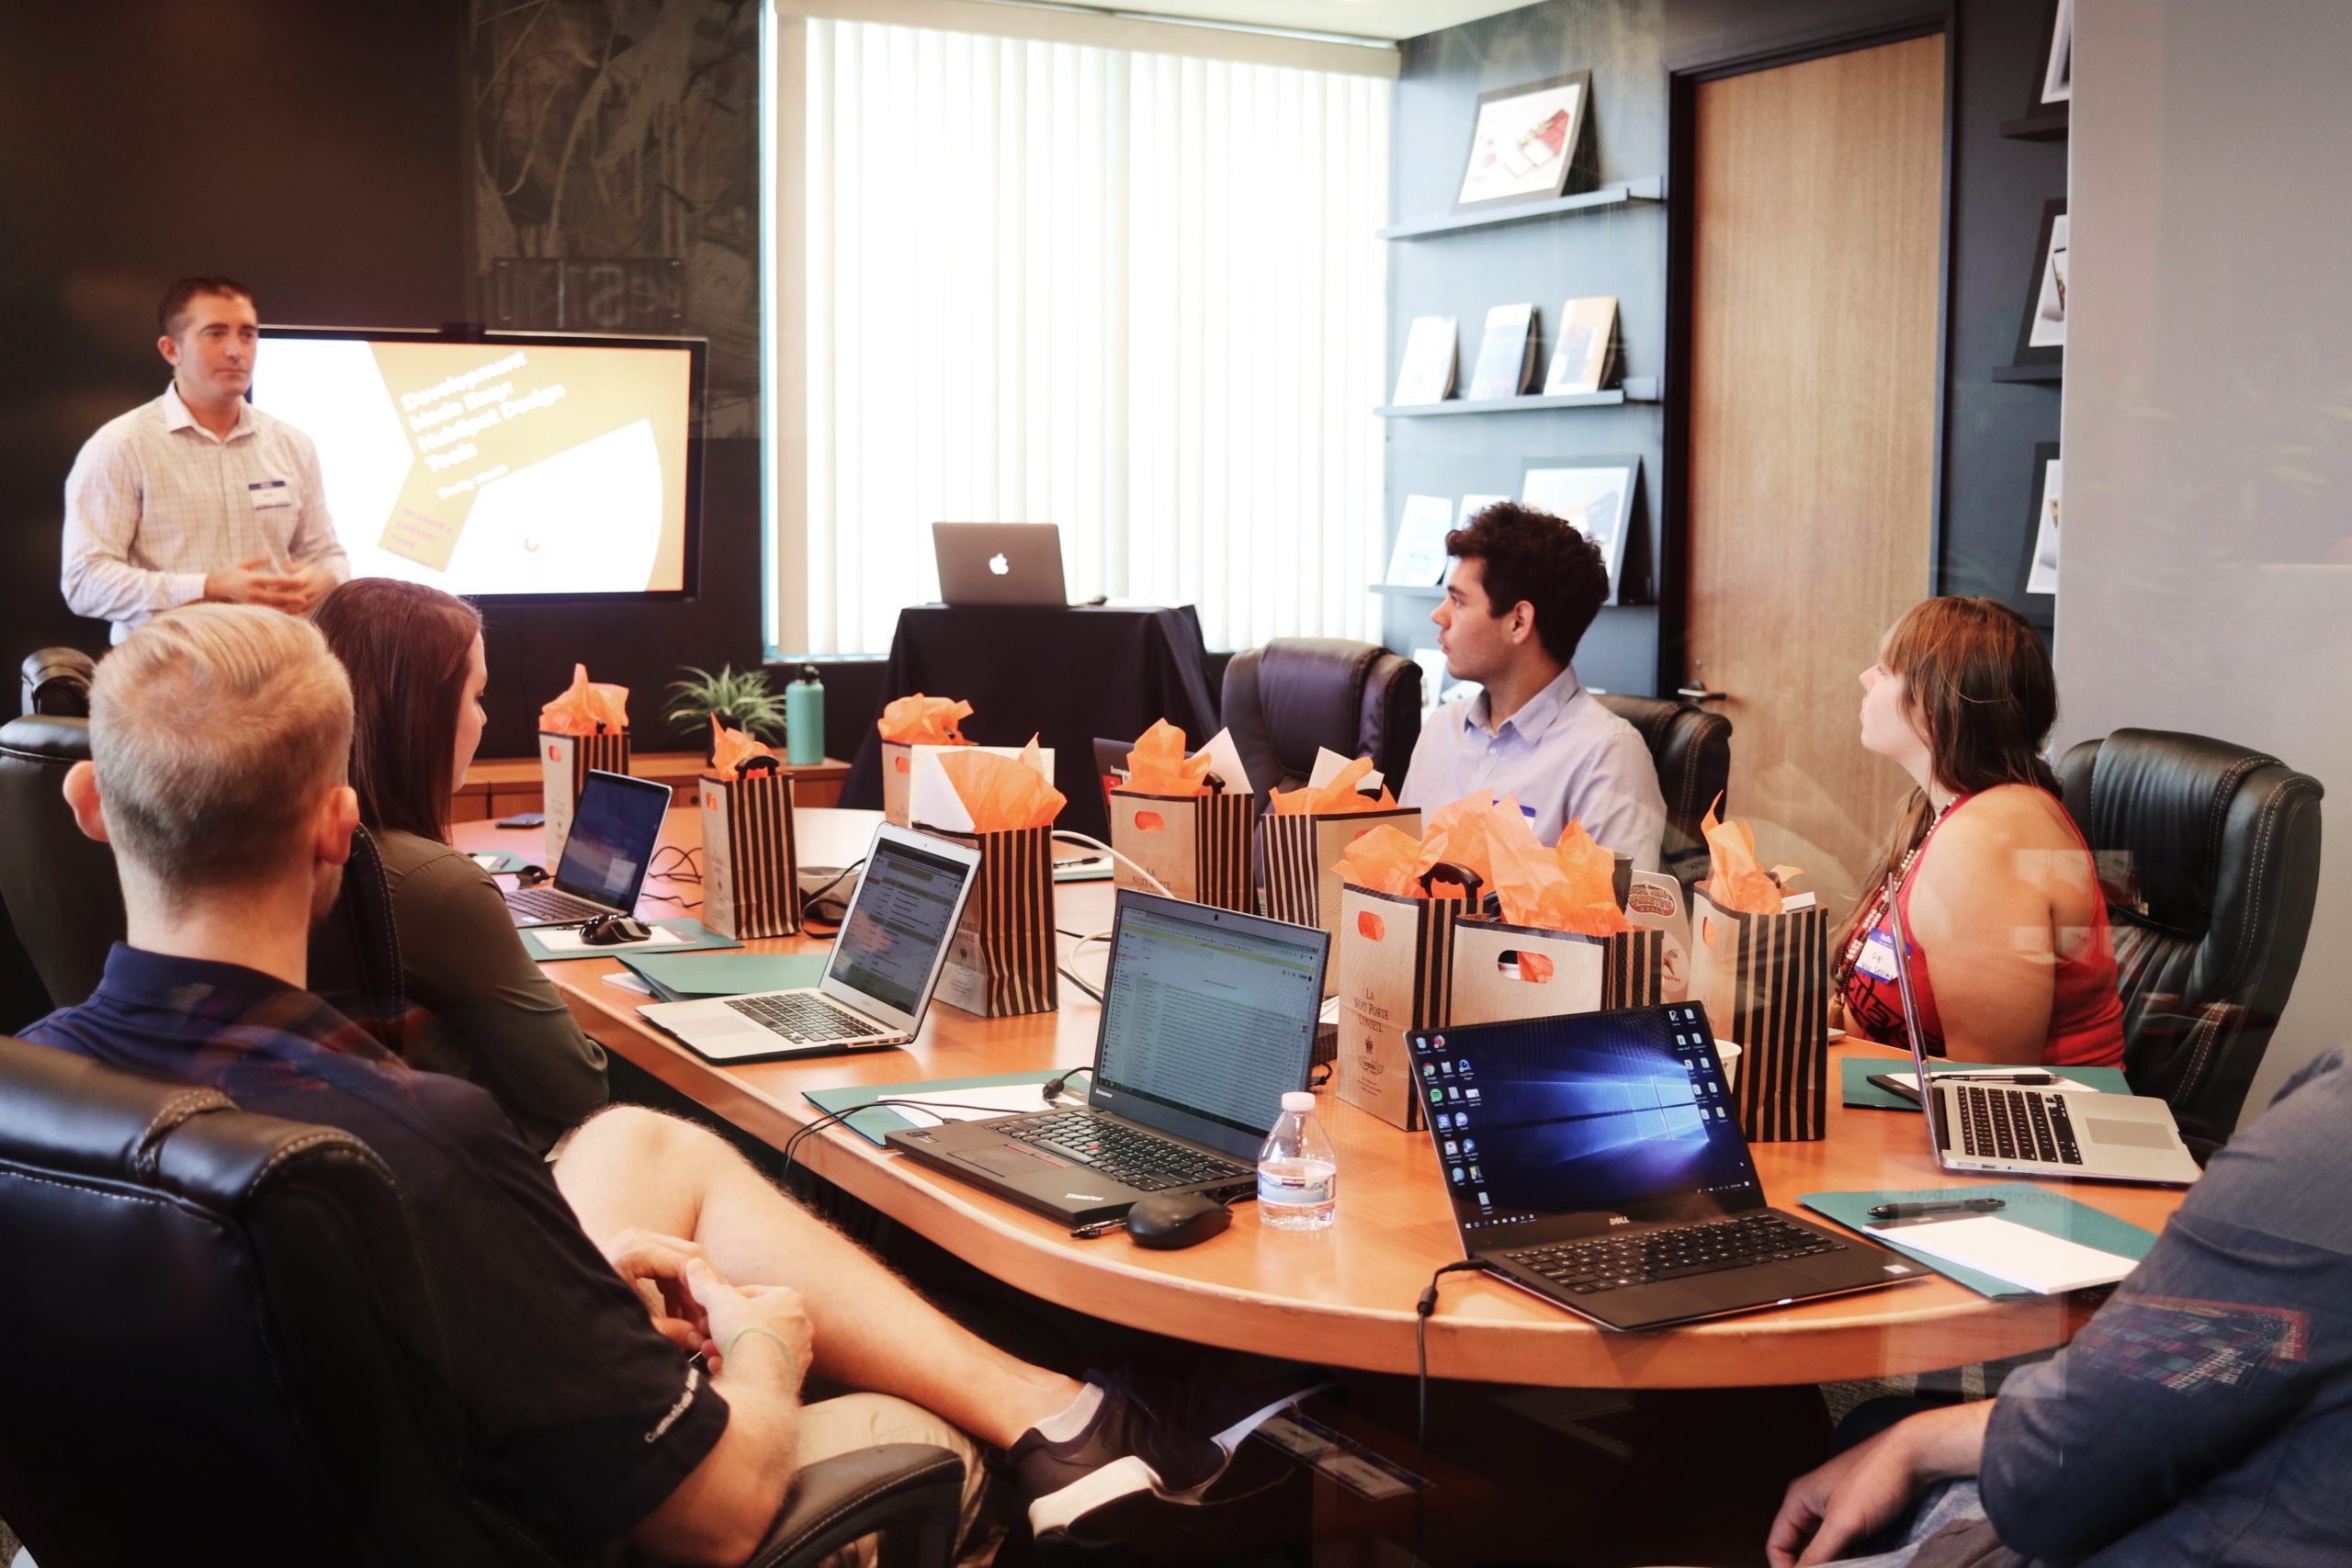 a man leading a meeting in front of four employees with gift bags and laptops on the desk